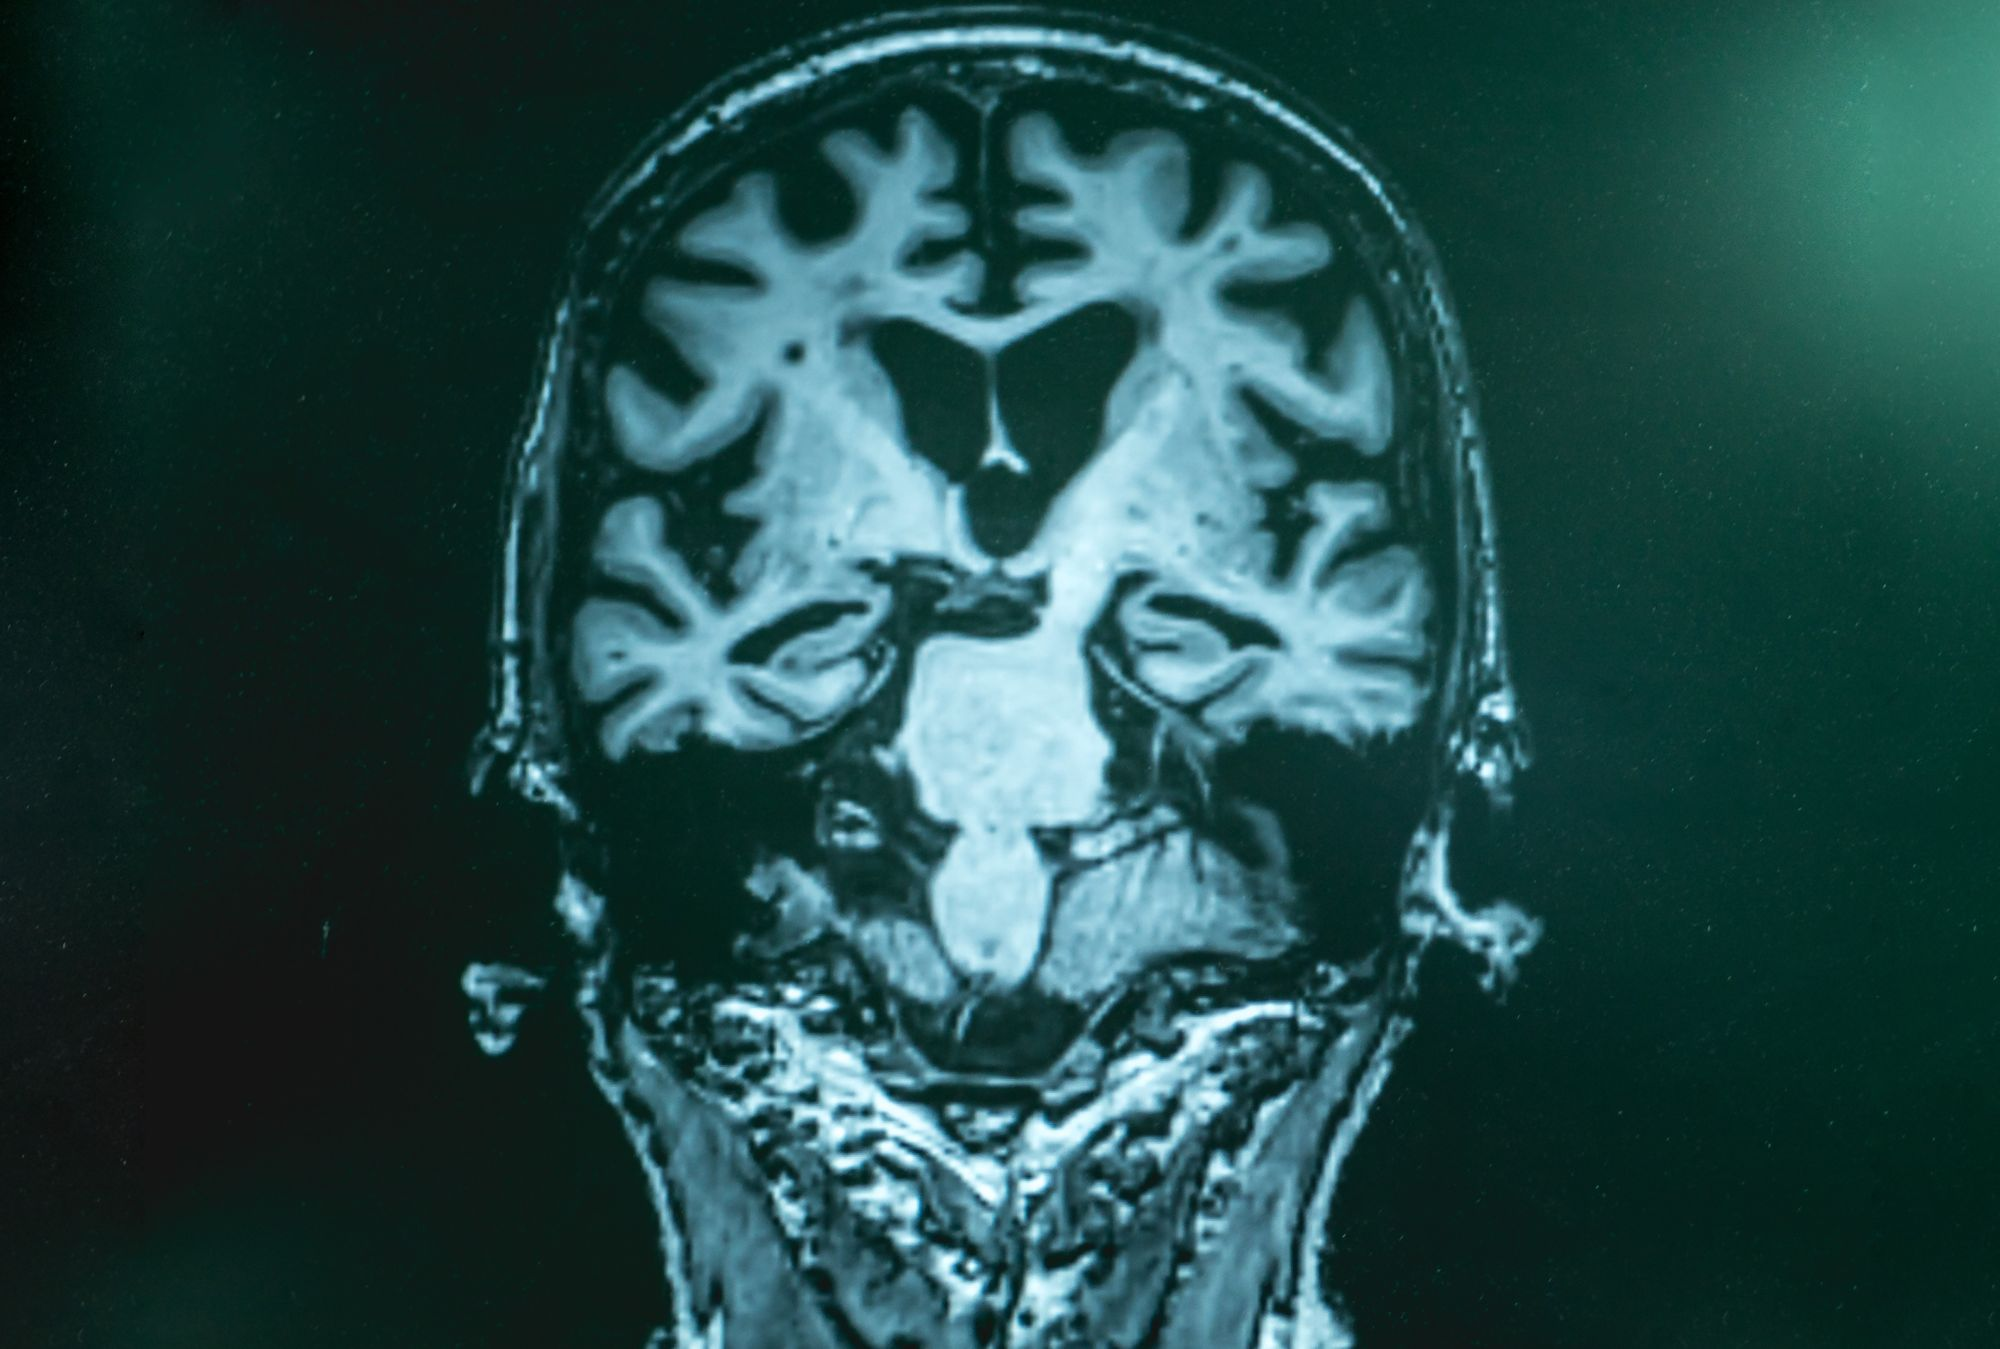 Stroke, Brain Injury, and Dementia: is there a link?